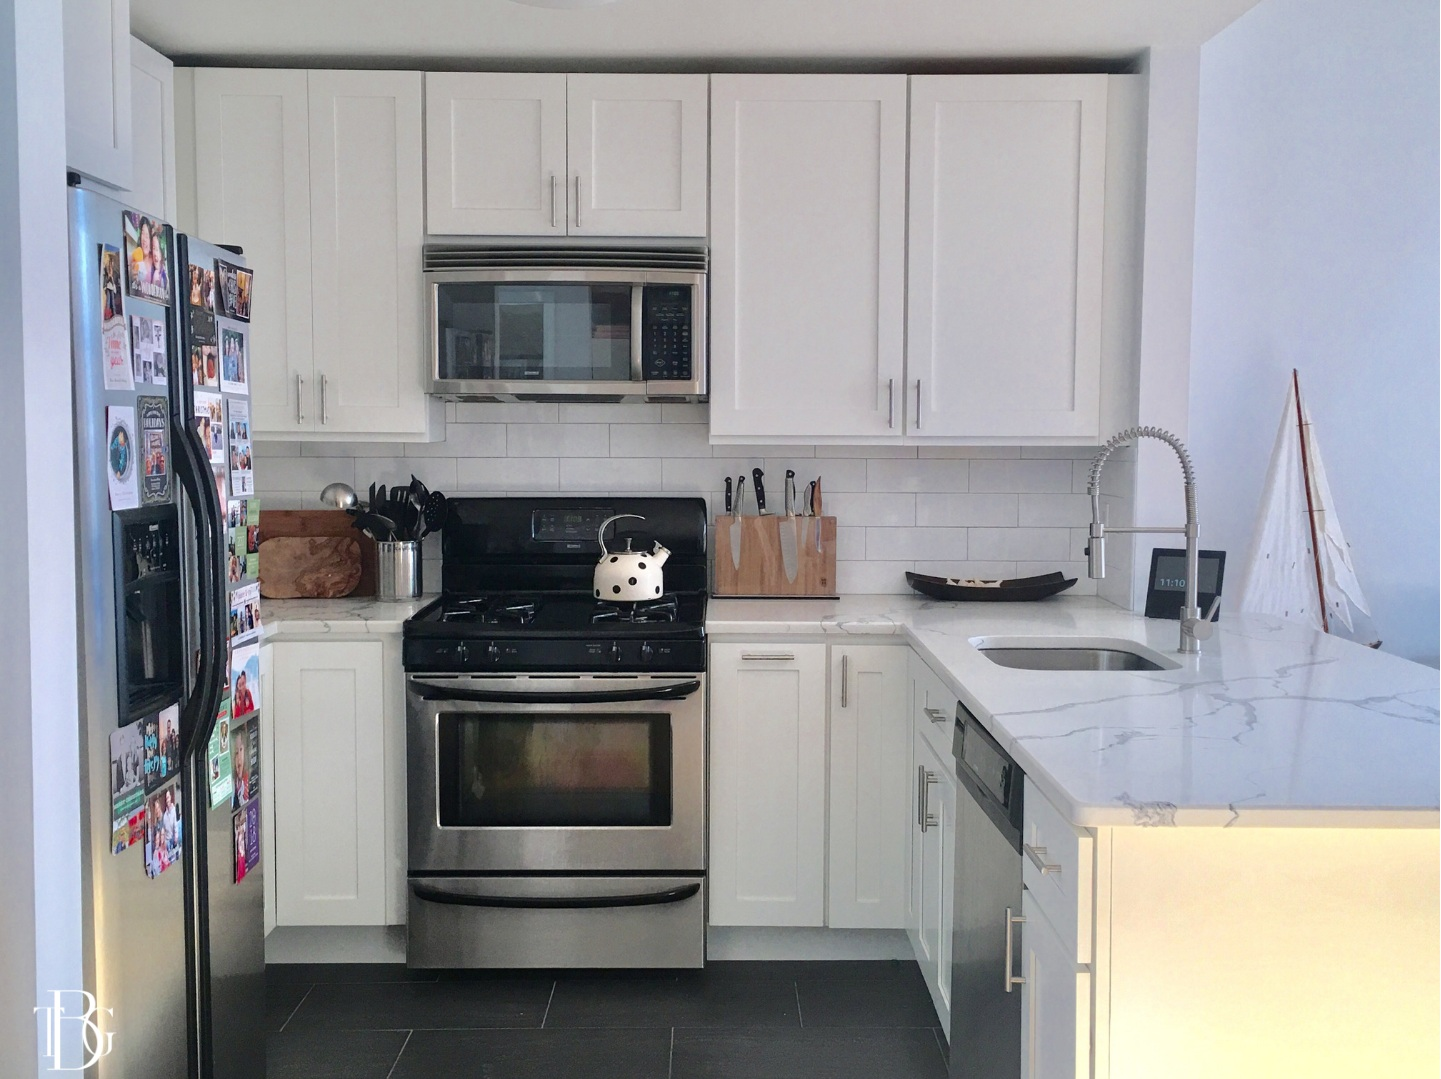 jersey-city-interior-style-kitchen.png